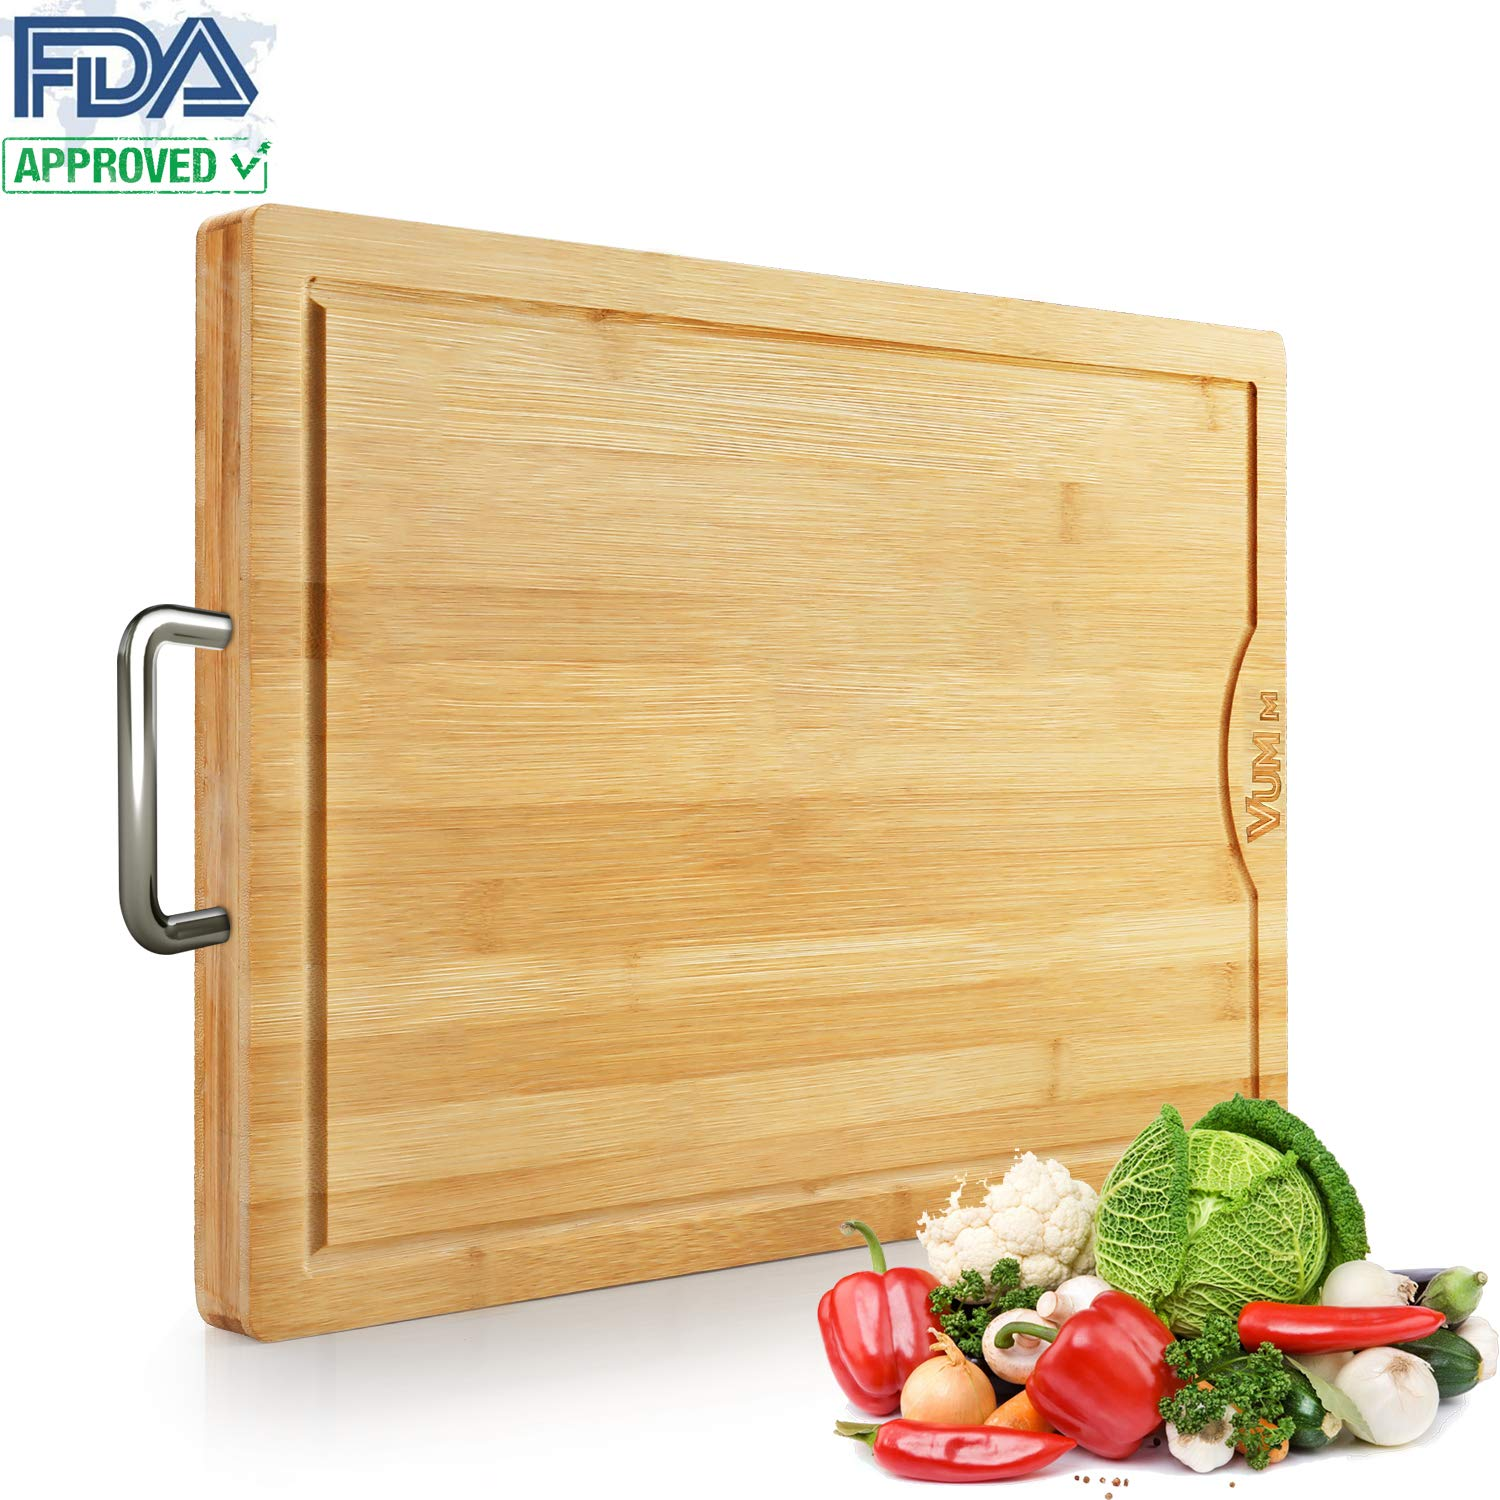 "Large Bamboo Cutting Boards For Kitchen with Juice Groove-VUMM Organic Heavy Duty Chopping Board for Meat/Vegetables Fruits Serving Tray, Butcher Block, Carving Board, BPA Free【21'' x13"" x1.2'' 】"